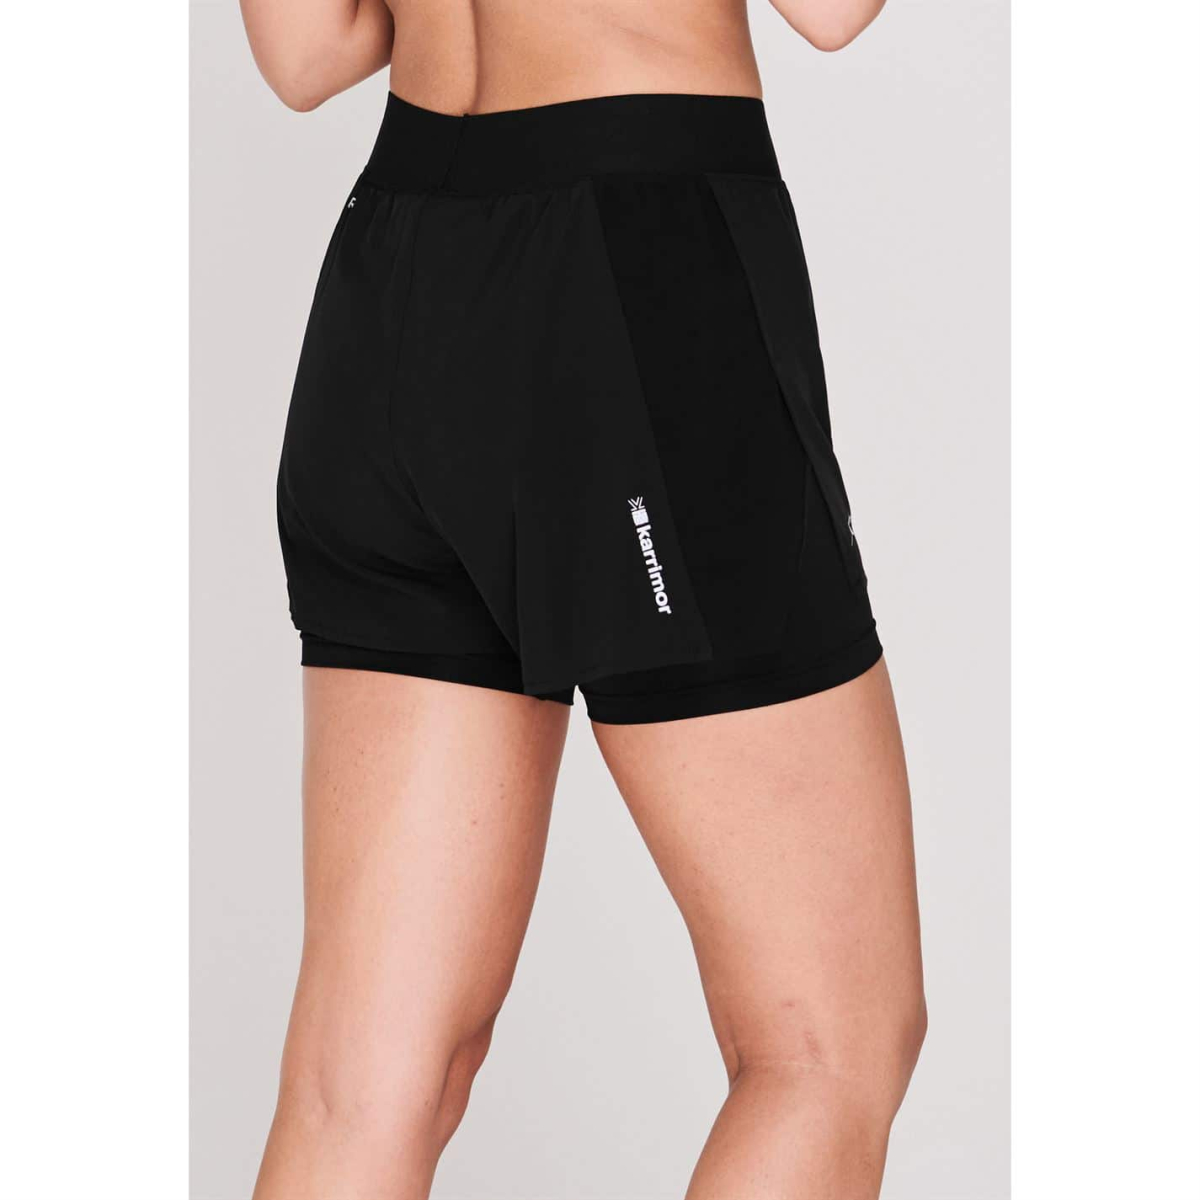 Karrimor 2 In 1 Kurzhose Shorts Damen